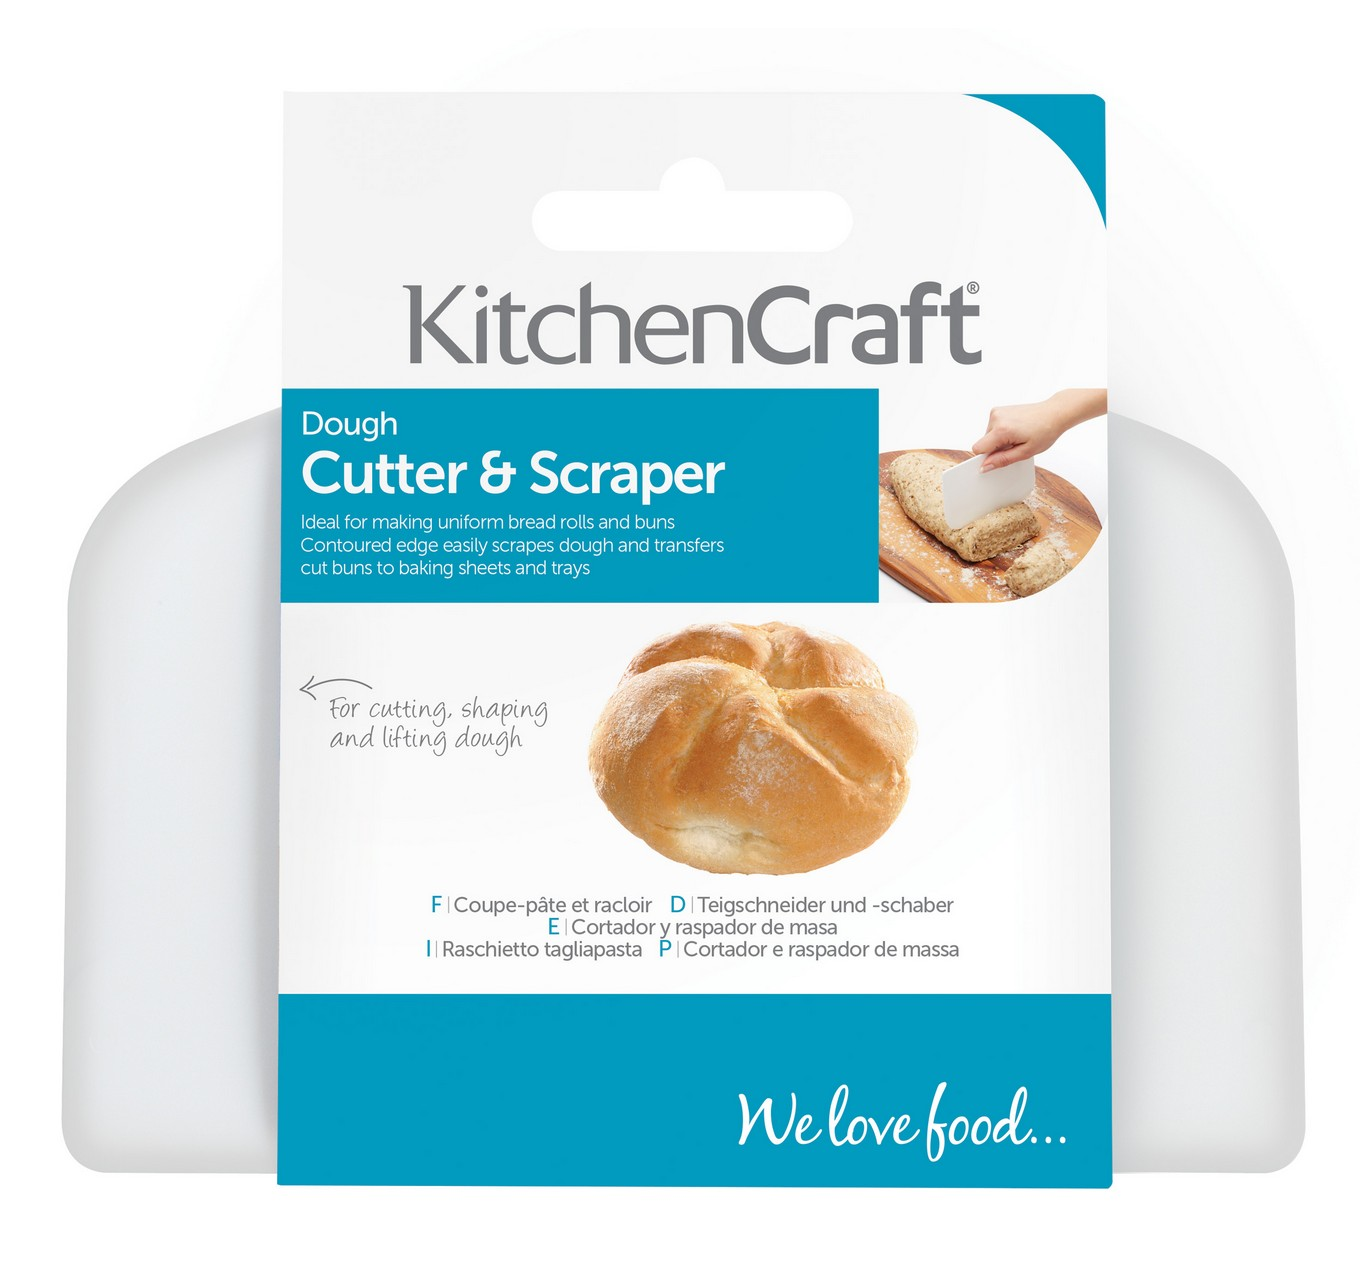 Dough Cutter & Scraper